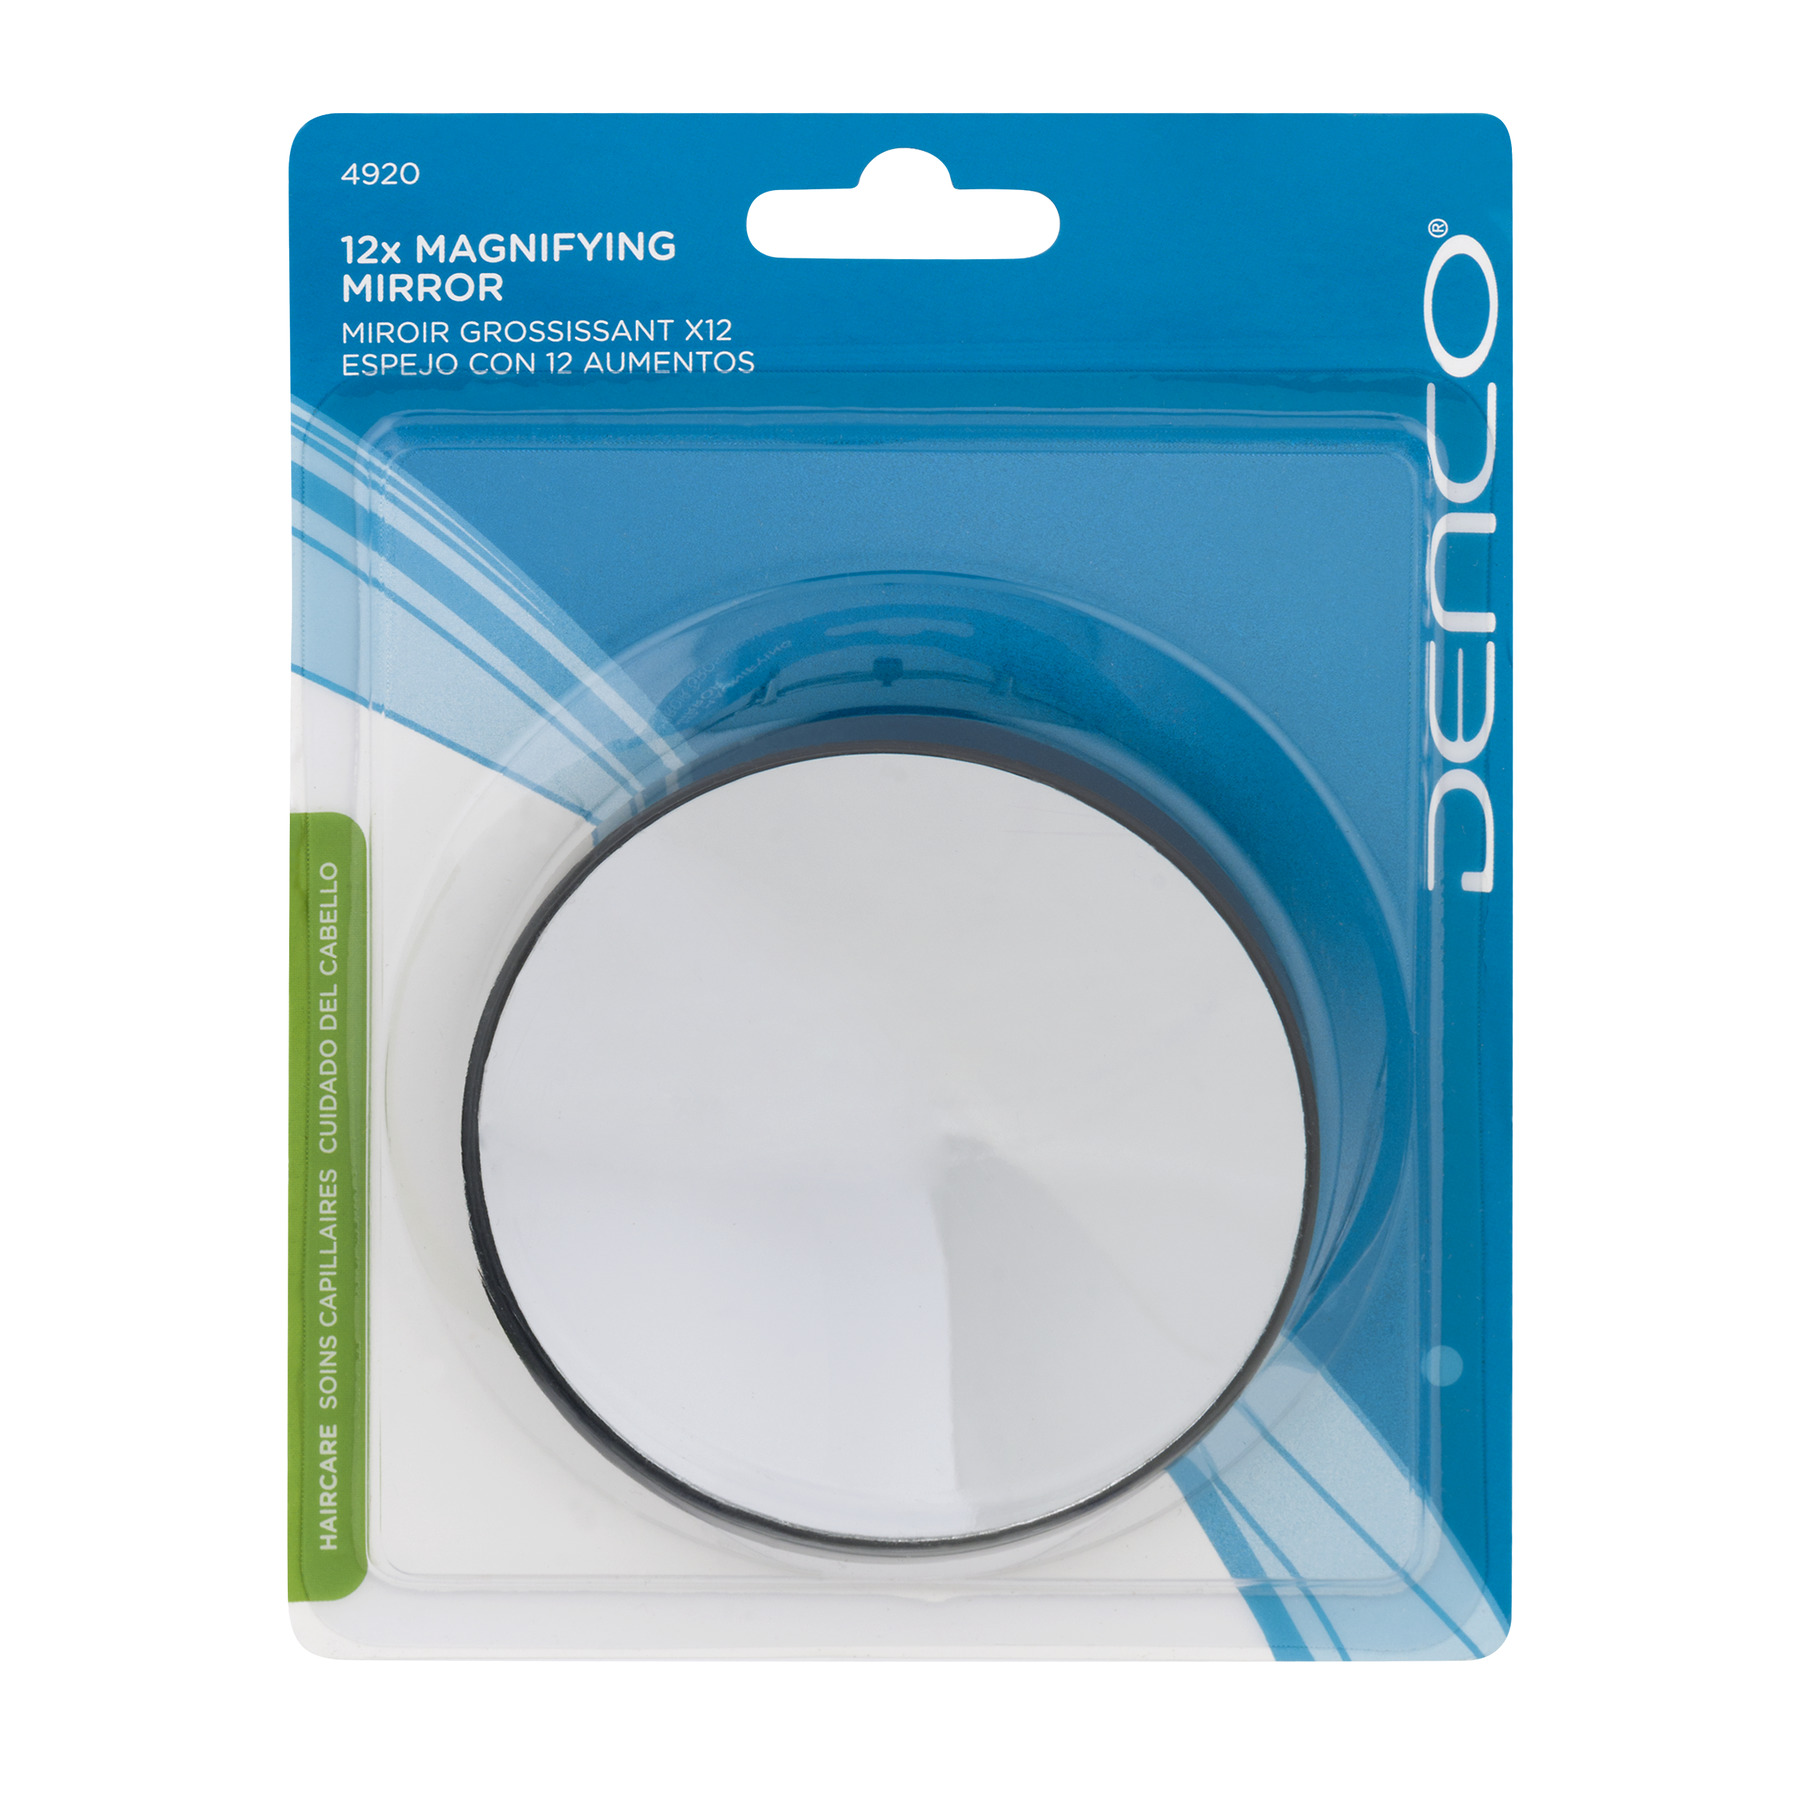 Denco Mirror 12x Magnifying 1 0 Ct Walmart Com